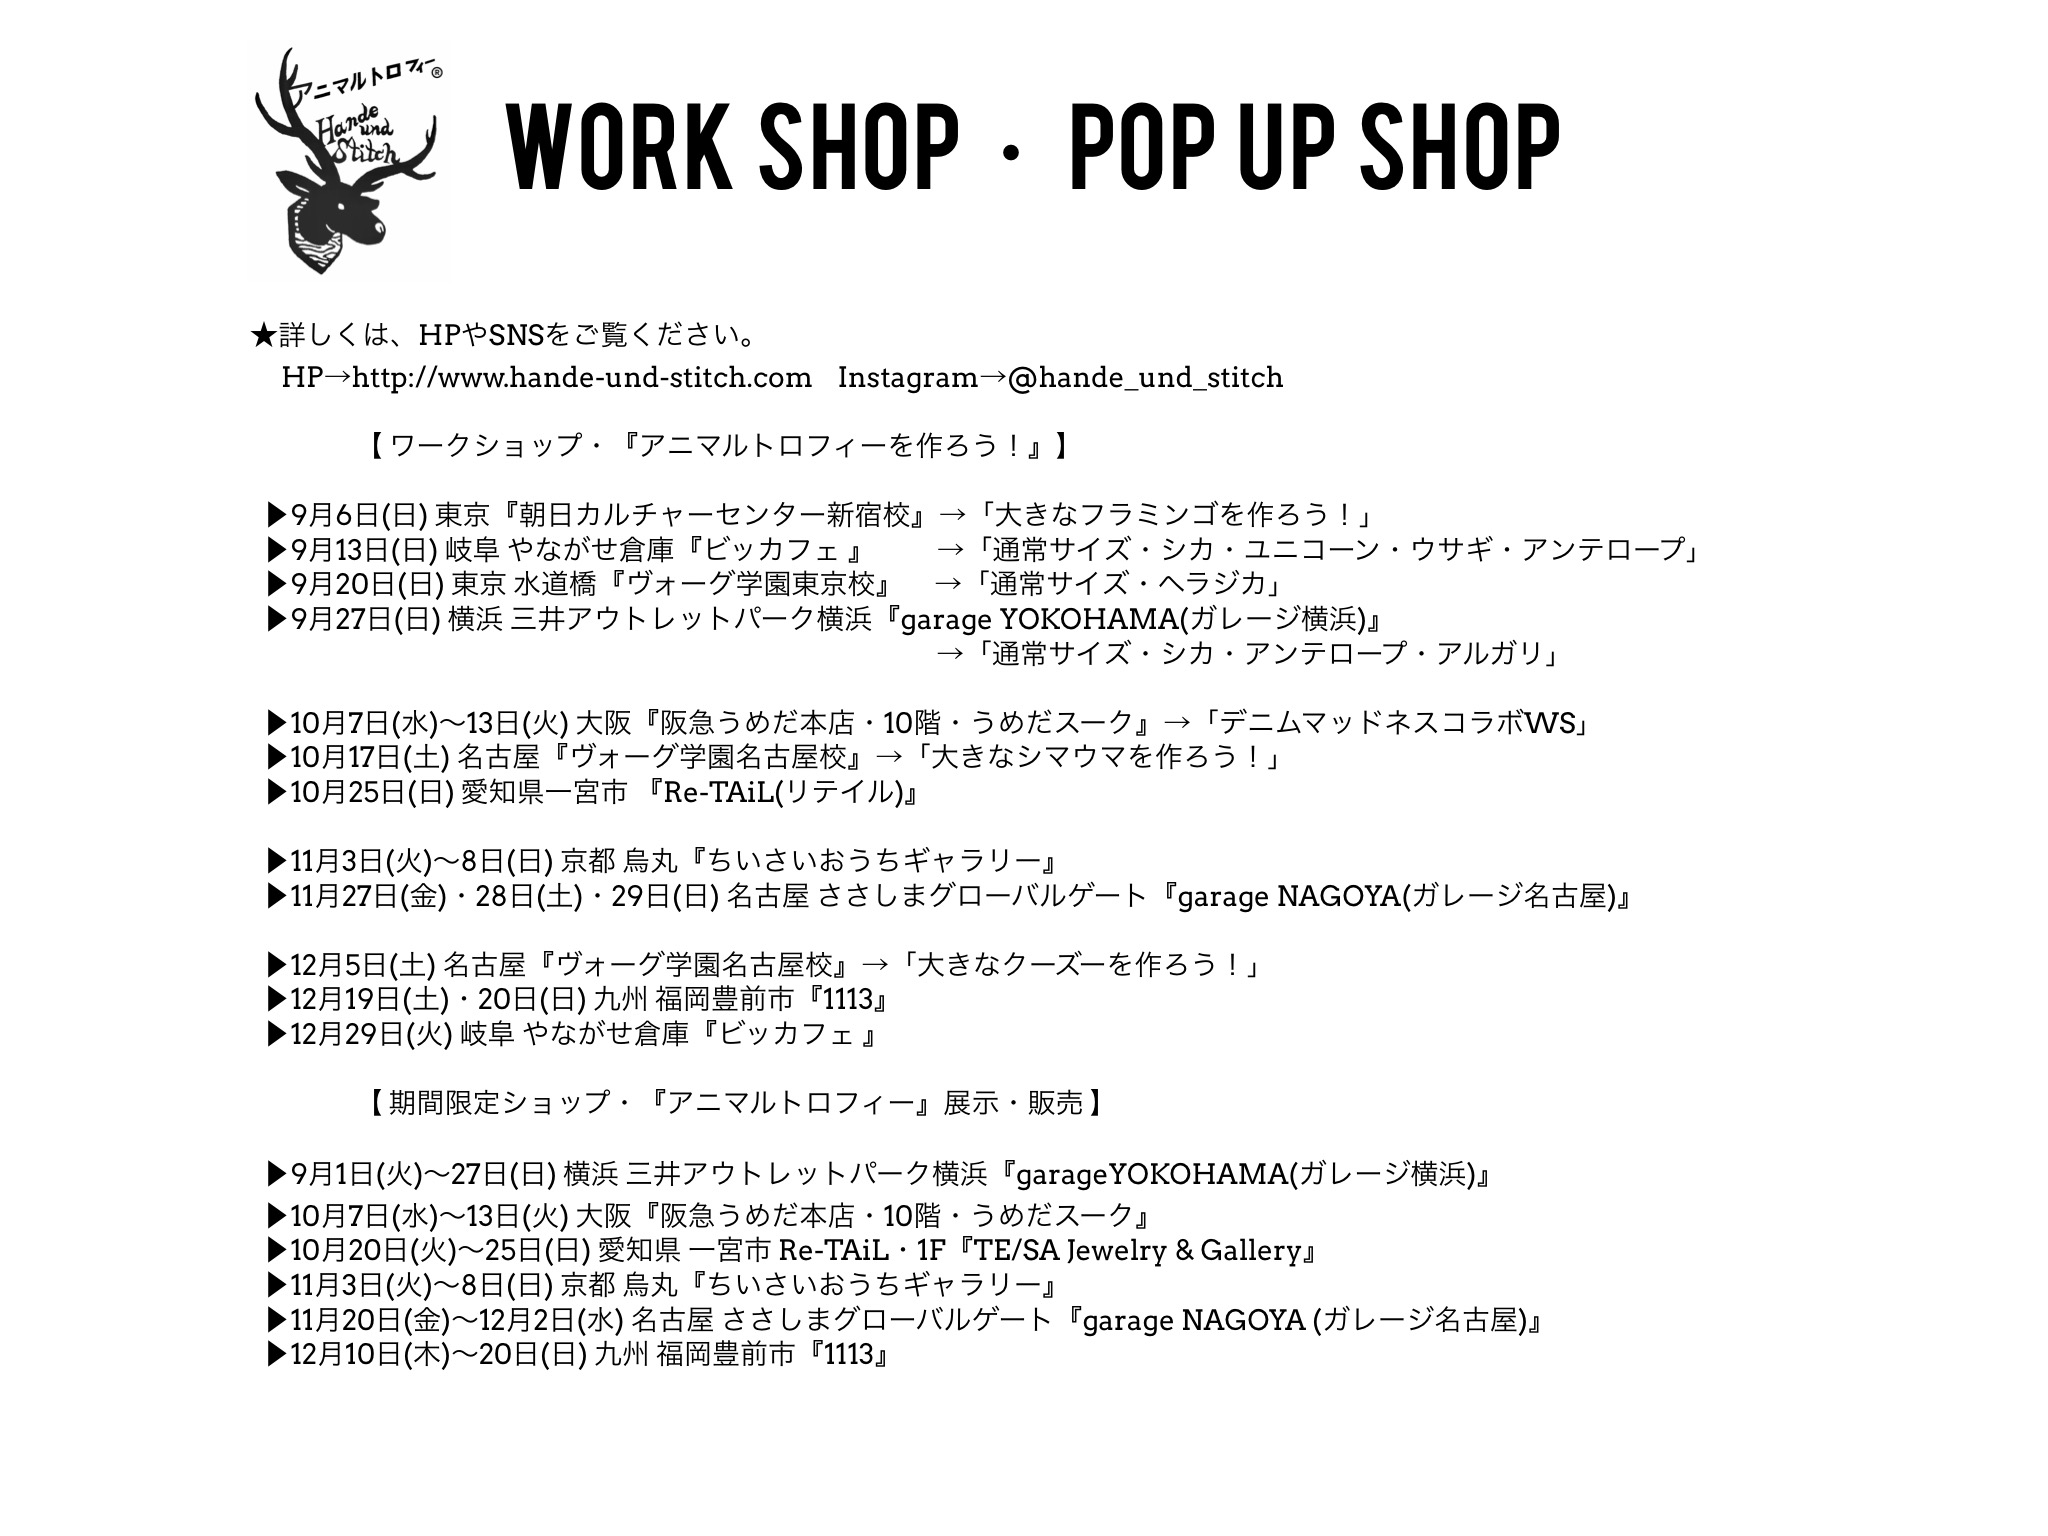 【2020年・WORK SHOP・POP UP SHOP・スケジュール】